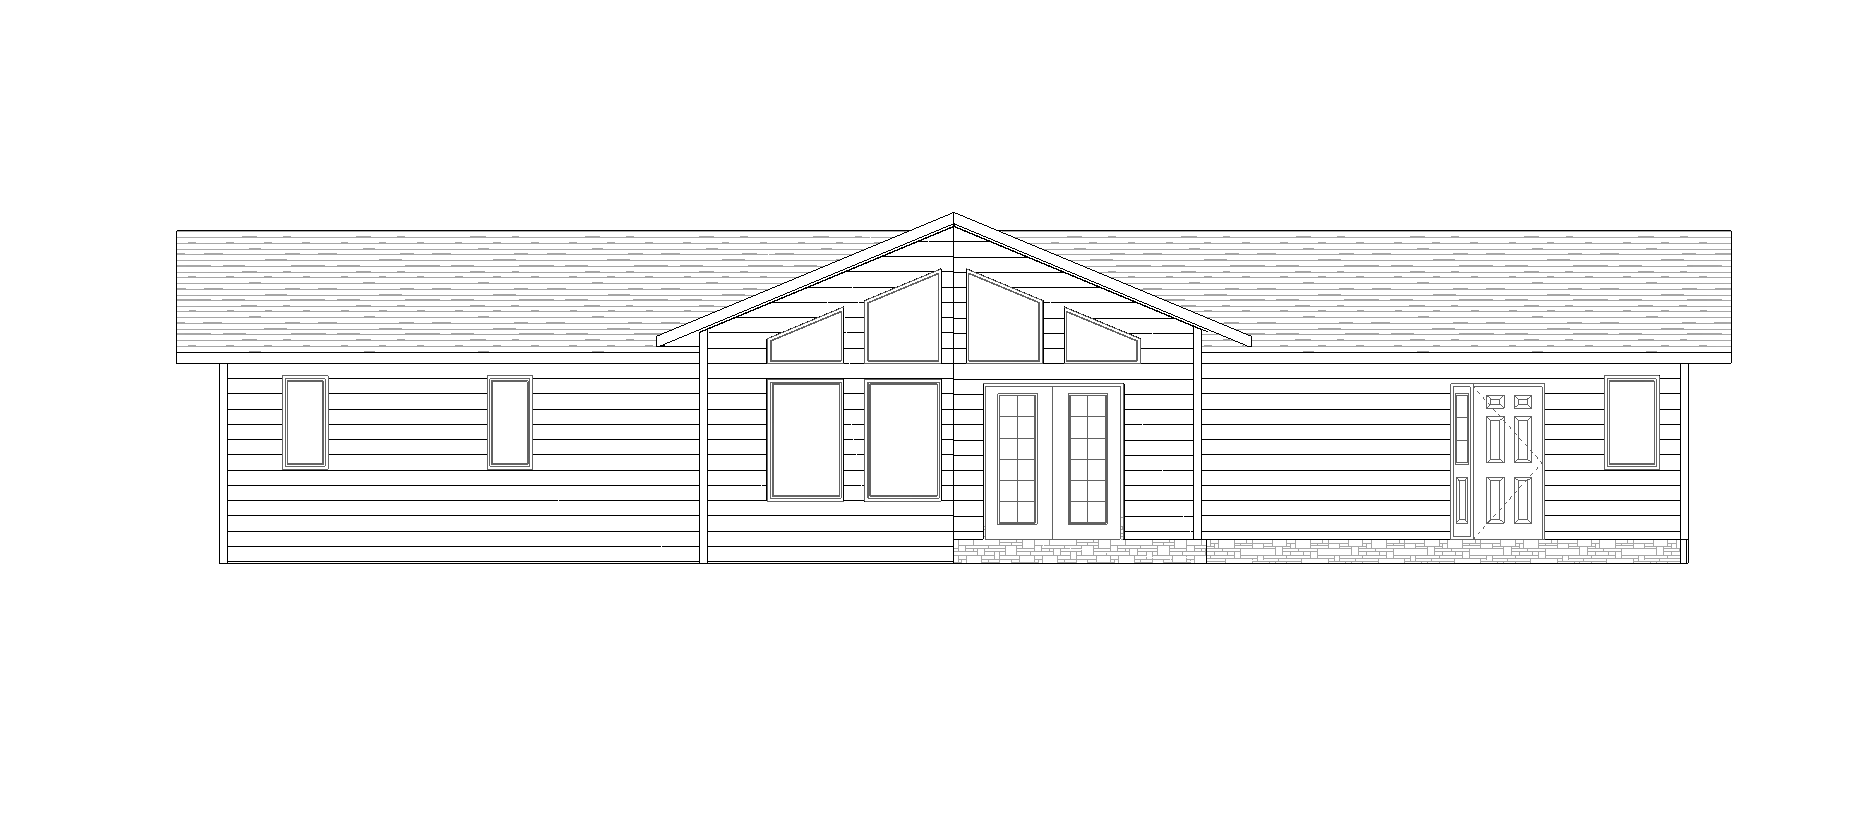 Penner Homes Elevation Map Id: 394